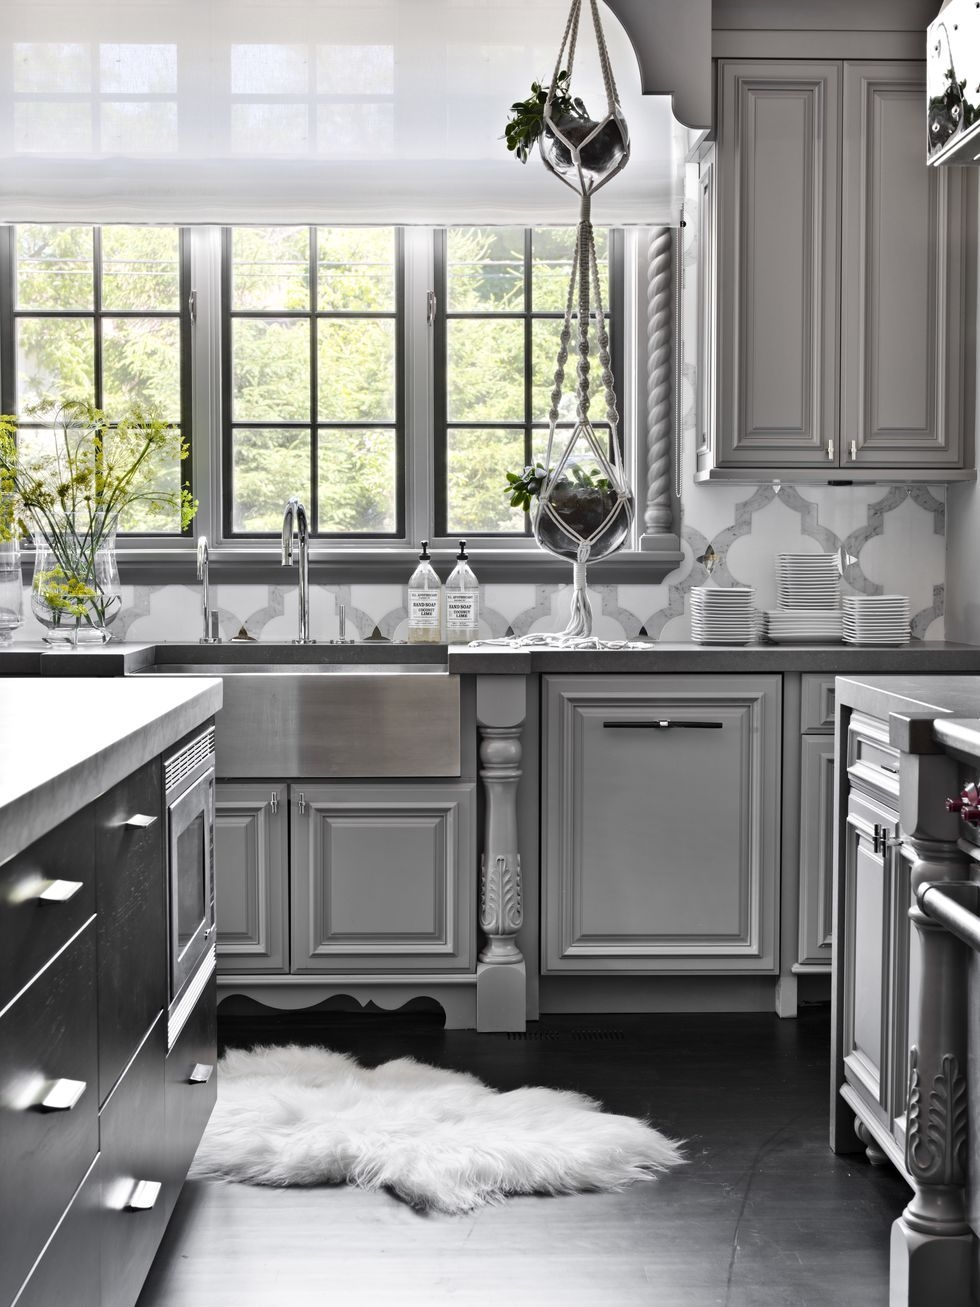 6 images light grey kitchen cabinets and review - alqu blog